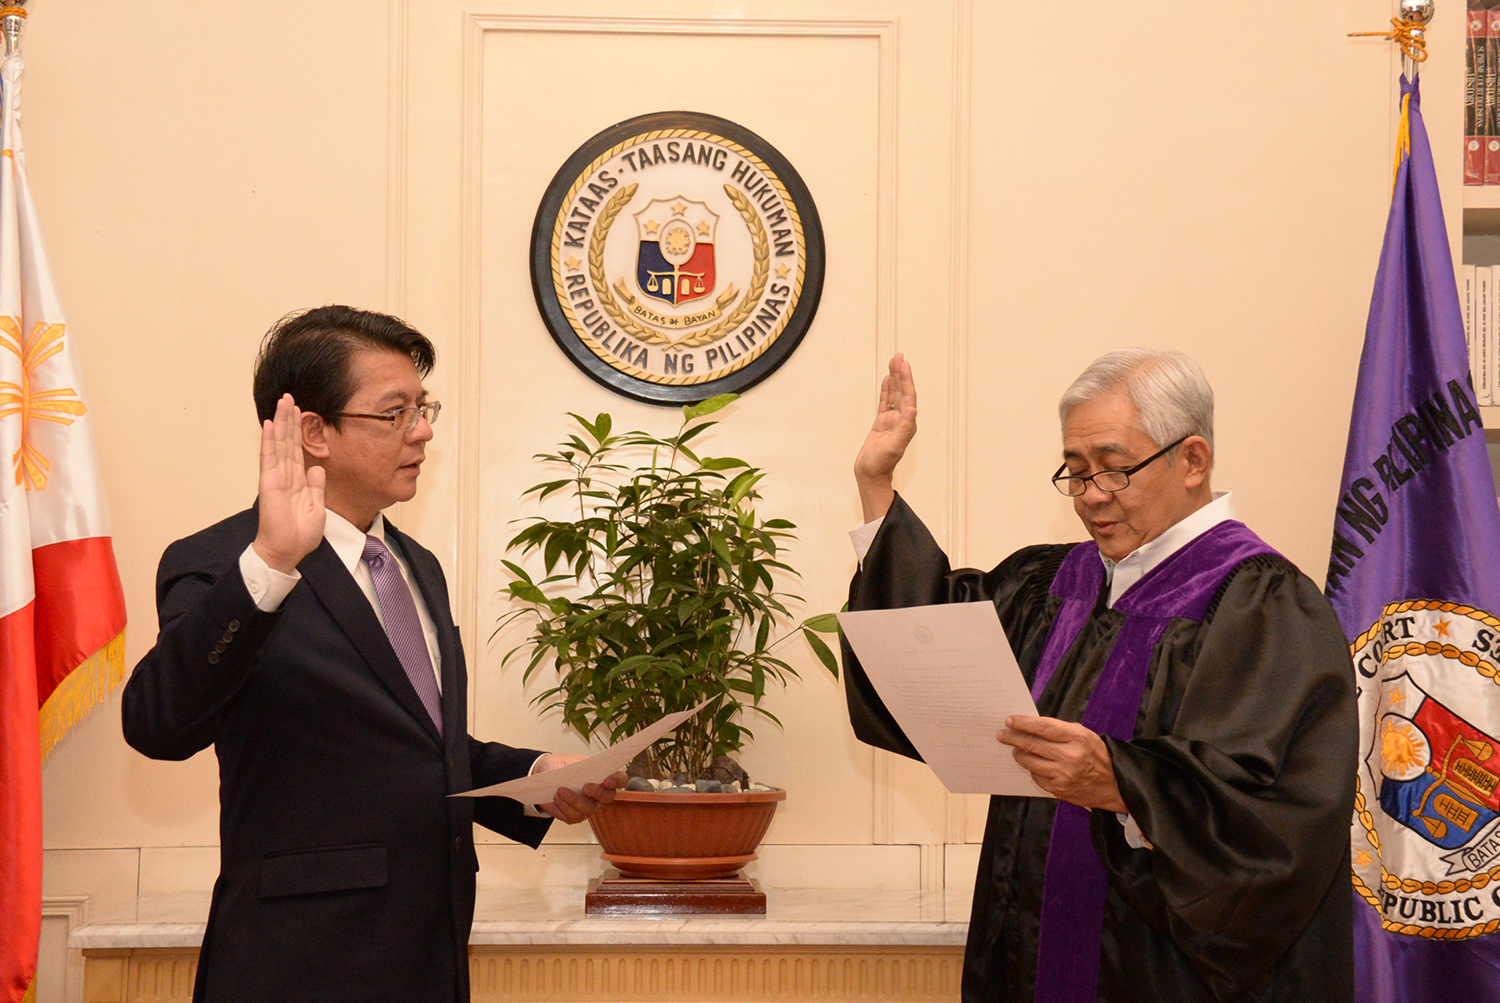 Sandiganbayan Associate Justice Karl Miranda takes his oath before Justice Francis Jardeleza. All photos by Francisco S. Gutierrez/SC PIO